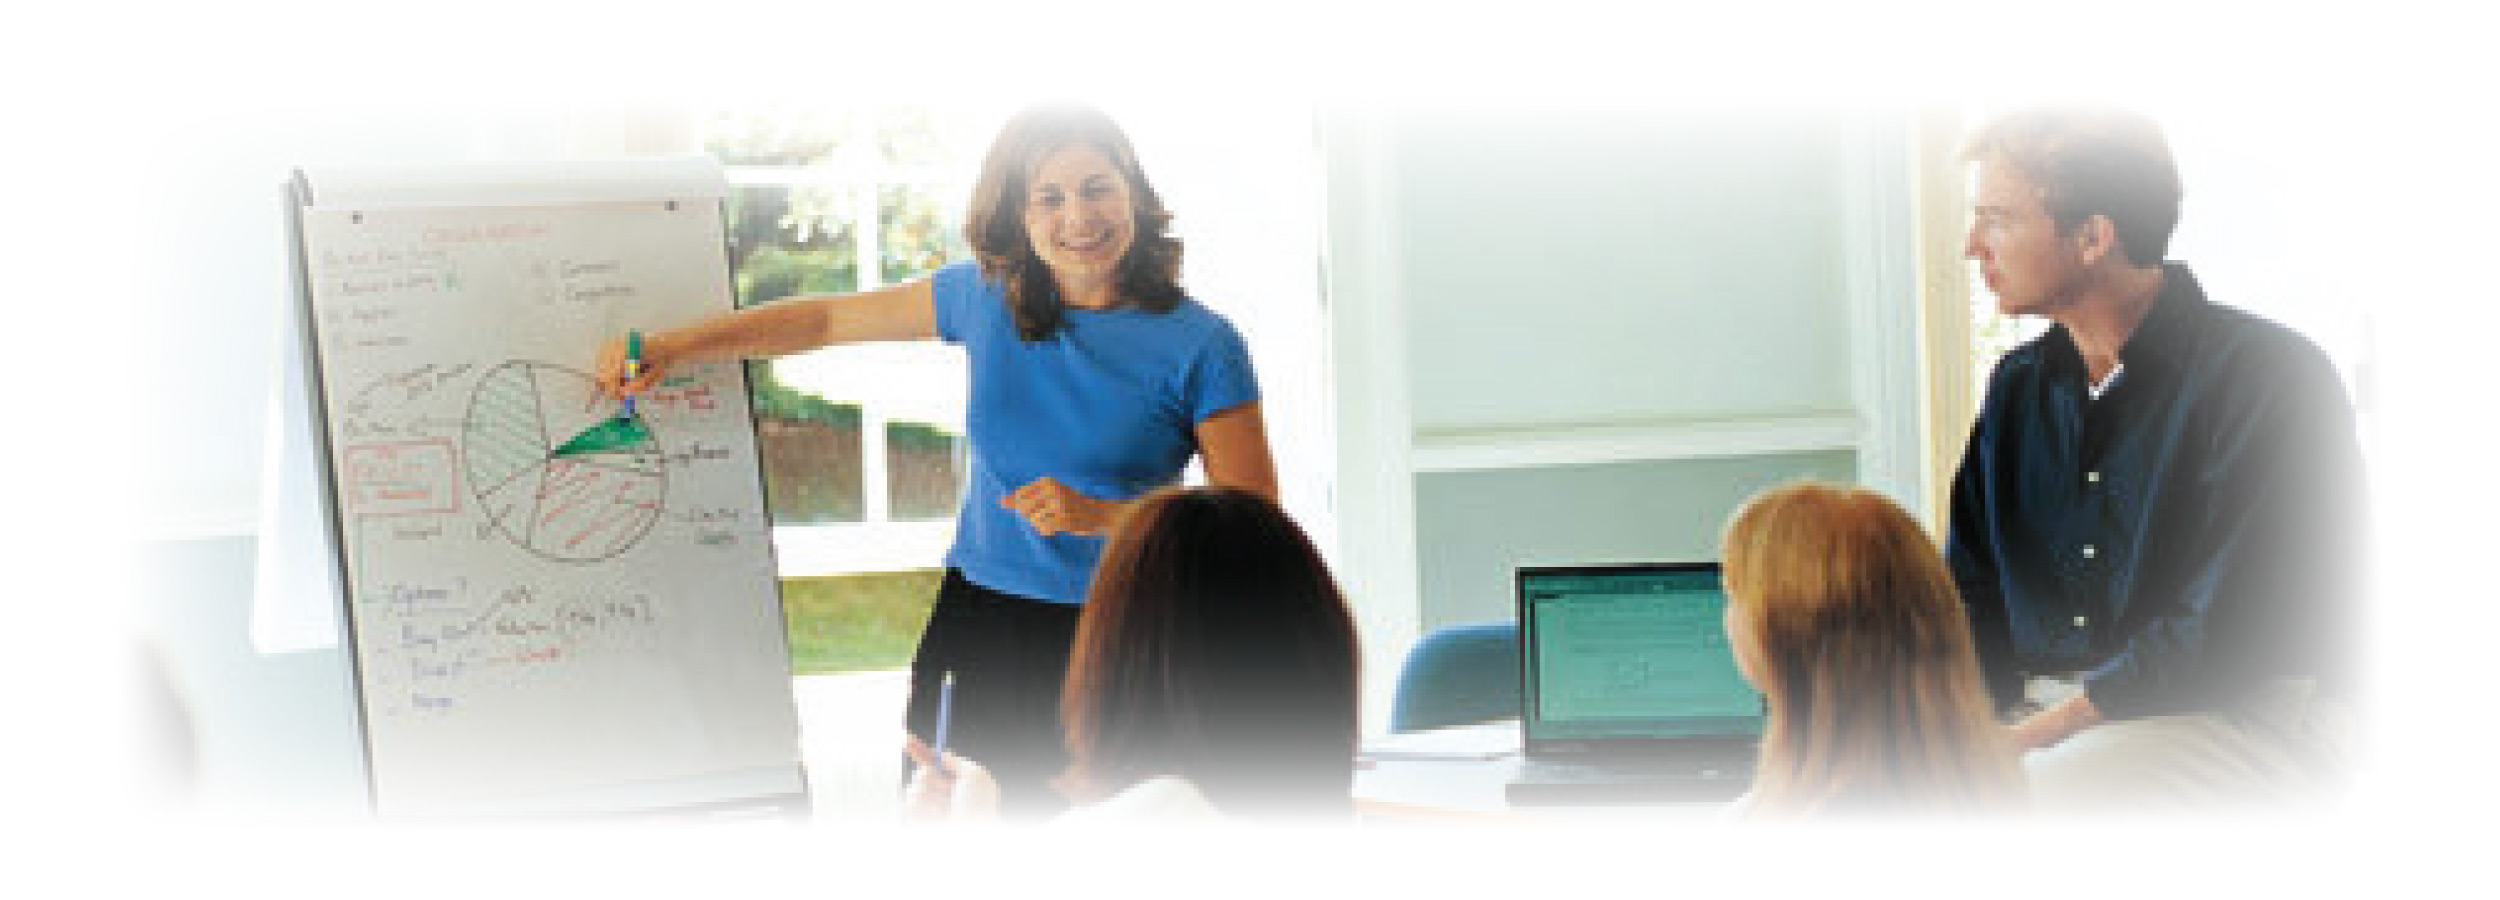 Employee Education and Training Learning Management System